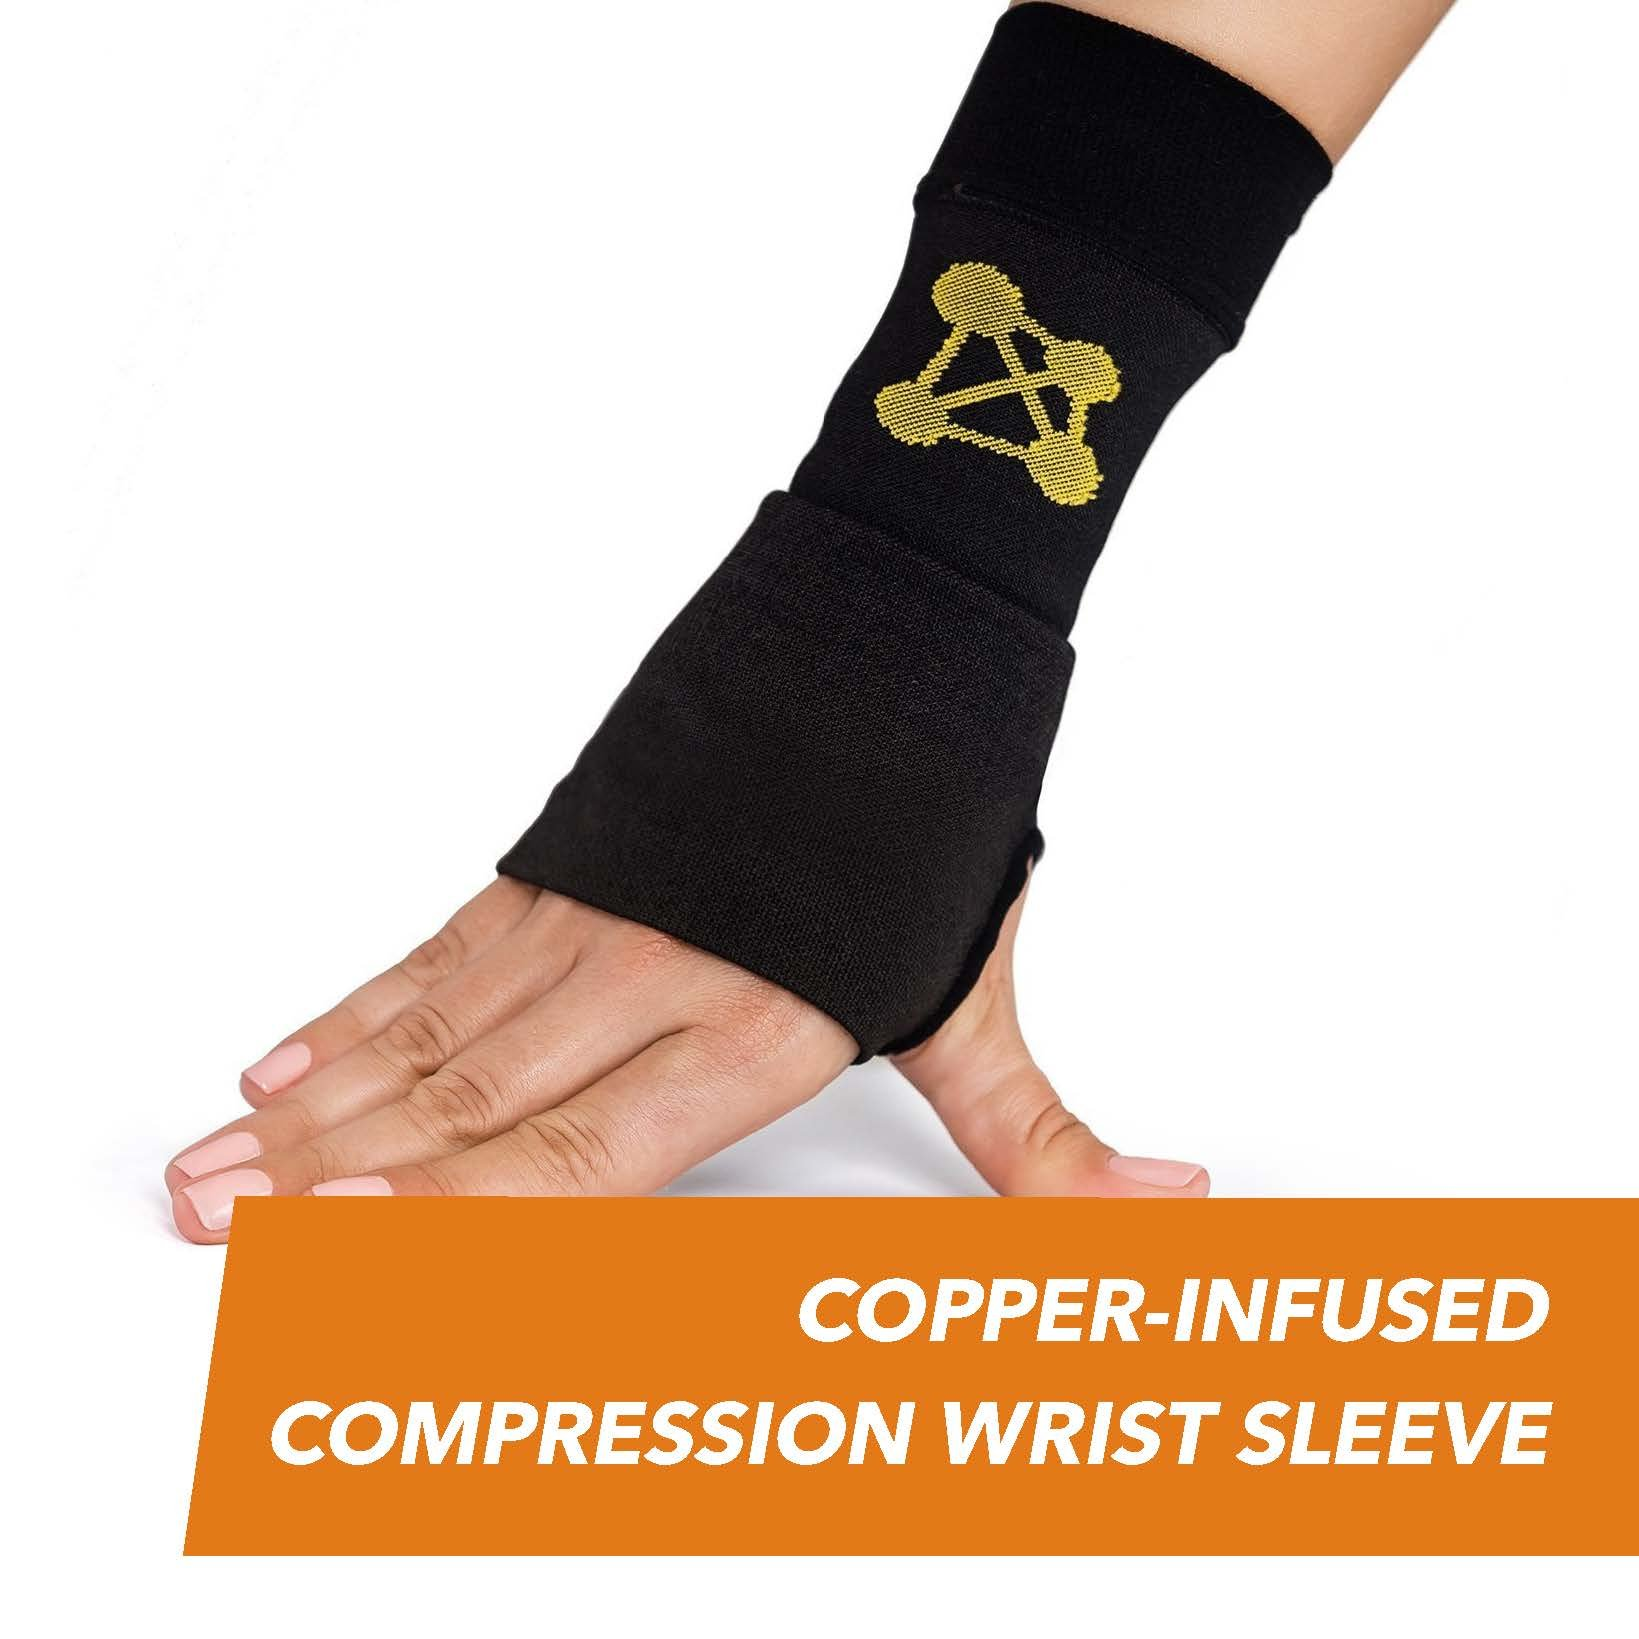 CopperJoint Copper-Infused Compression Wrist Sleeve, High-Performance Design Promotes Improved Circulation to Help Reduce Inflammation and Pain, Single Sleeve (Left, Large)